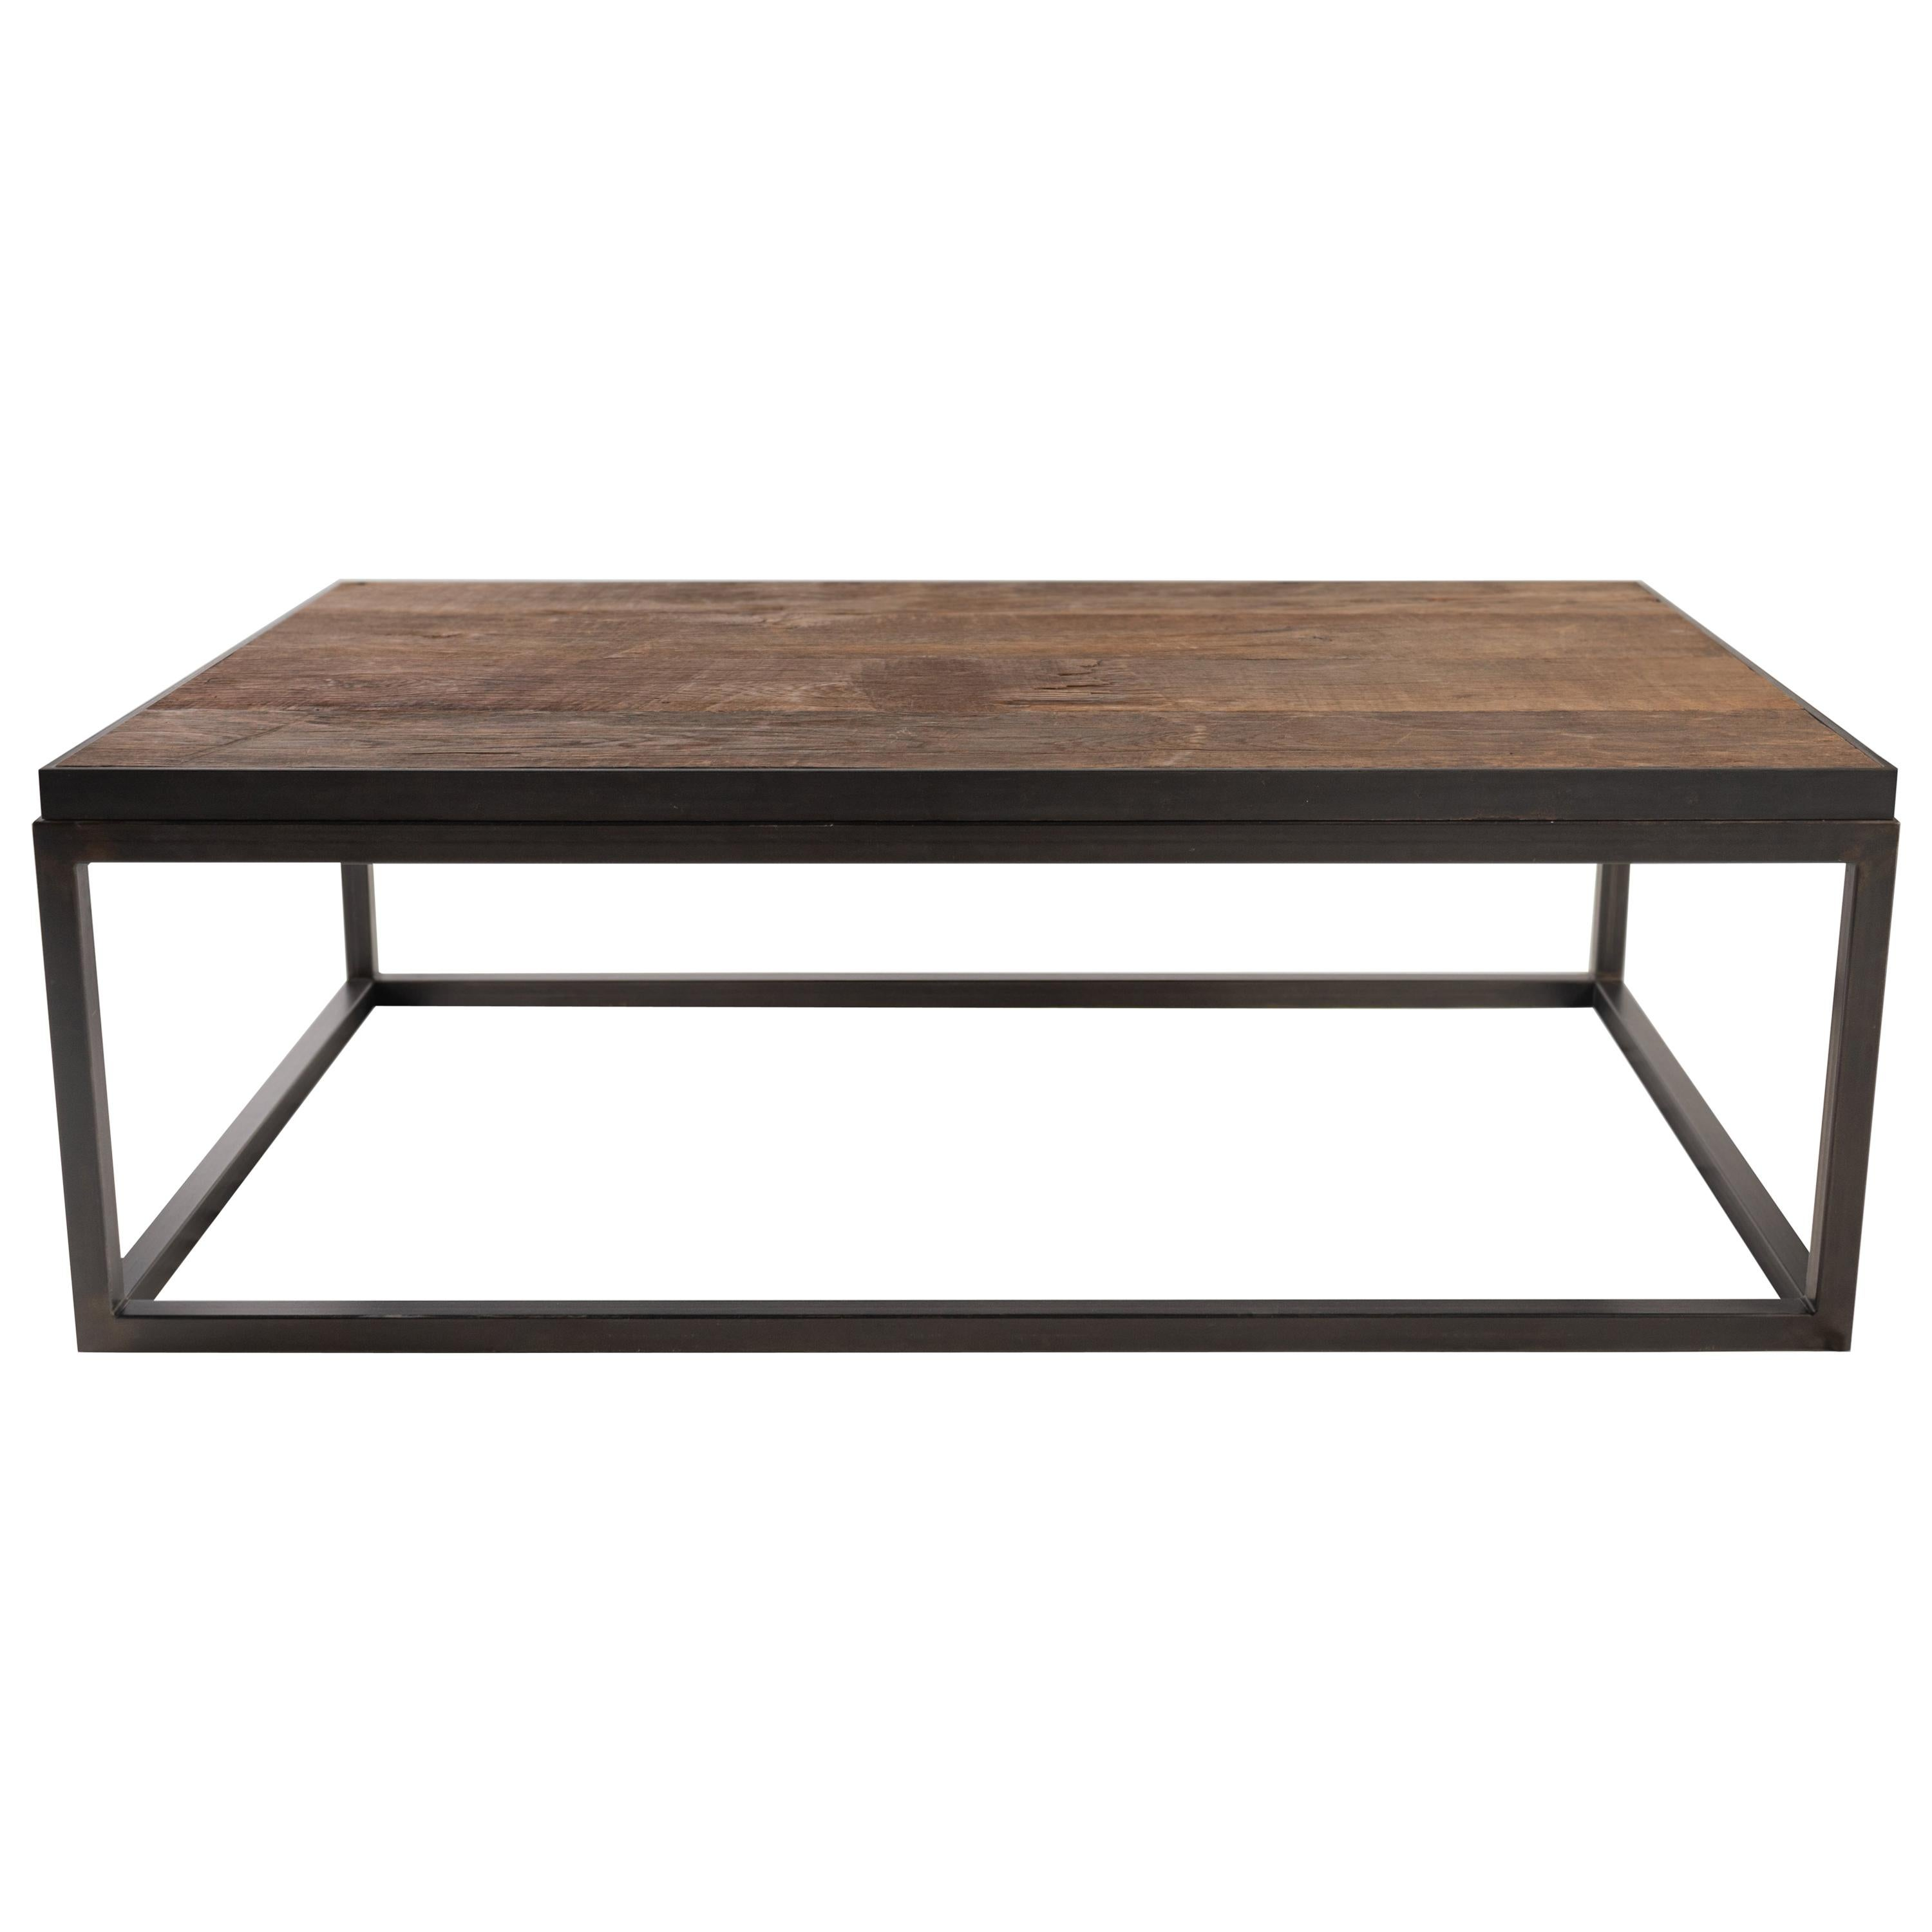 Coffee Table with Top Crafted from Reclaimed Oak & Ebony Patina Steel Base